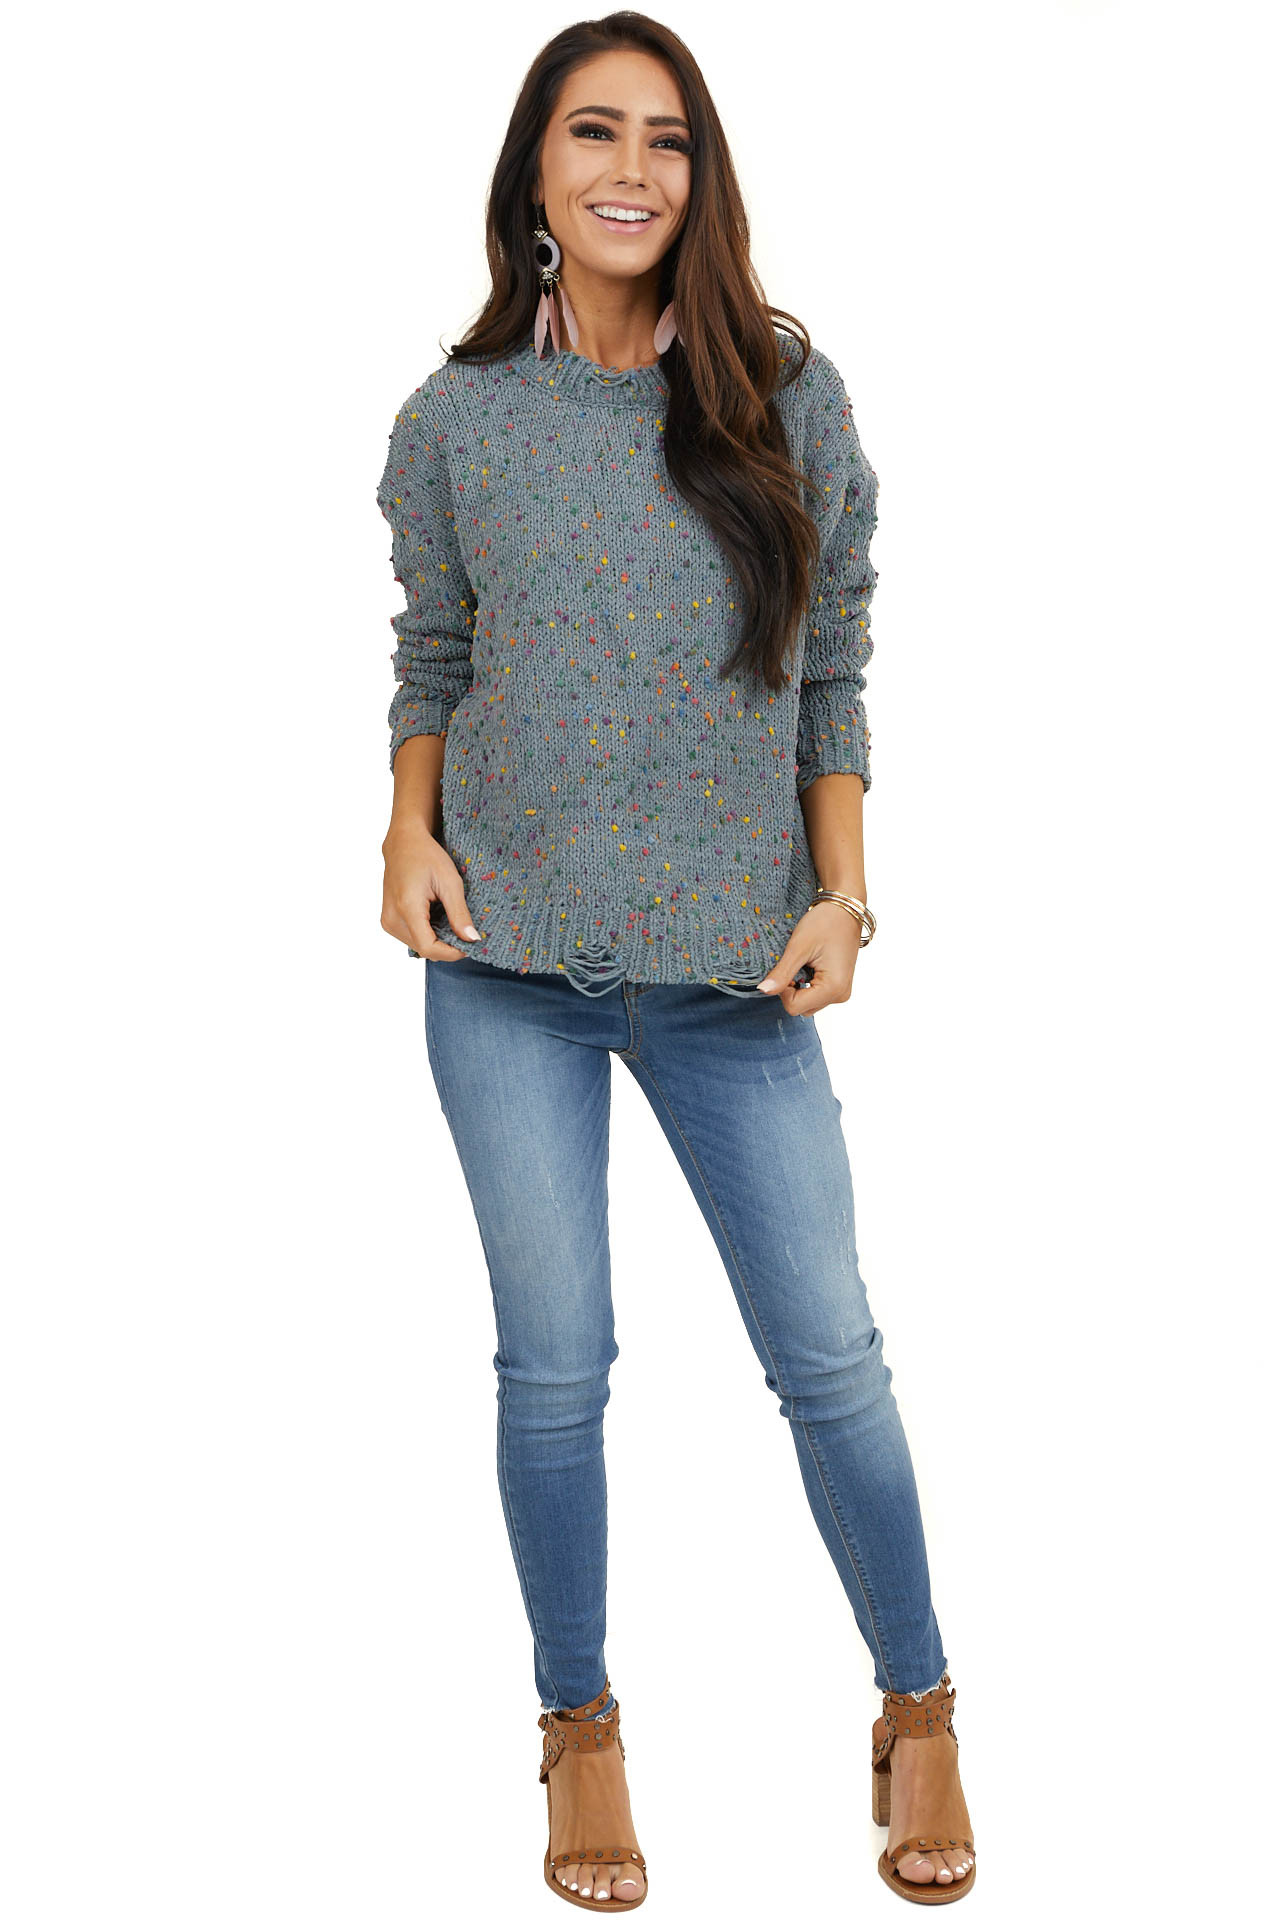 Grey Sweater with Rainbow Speckles and Distressed Detail